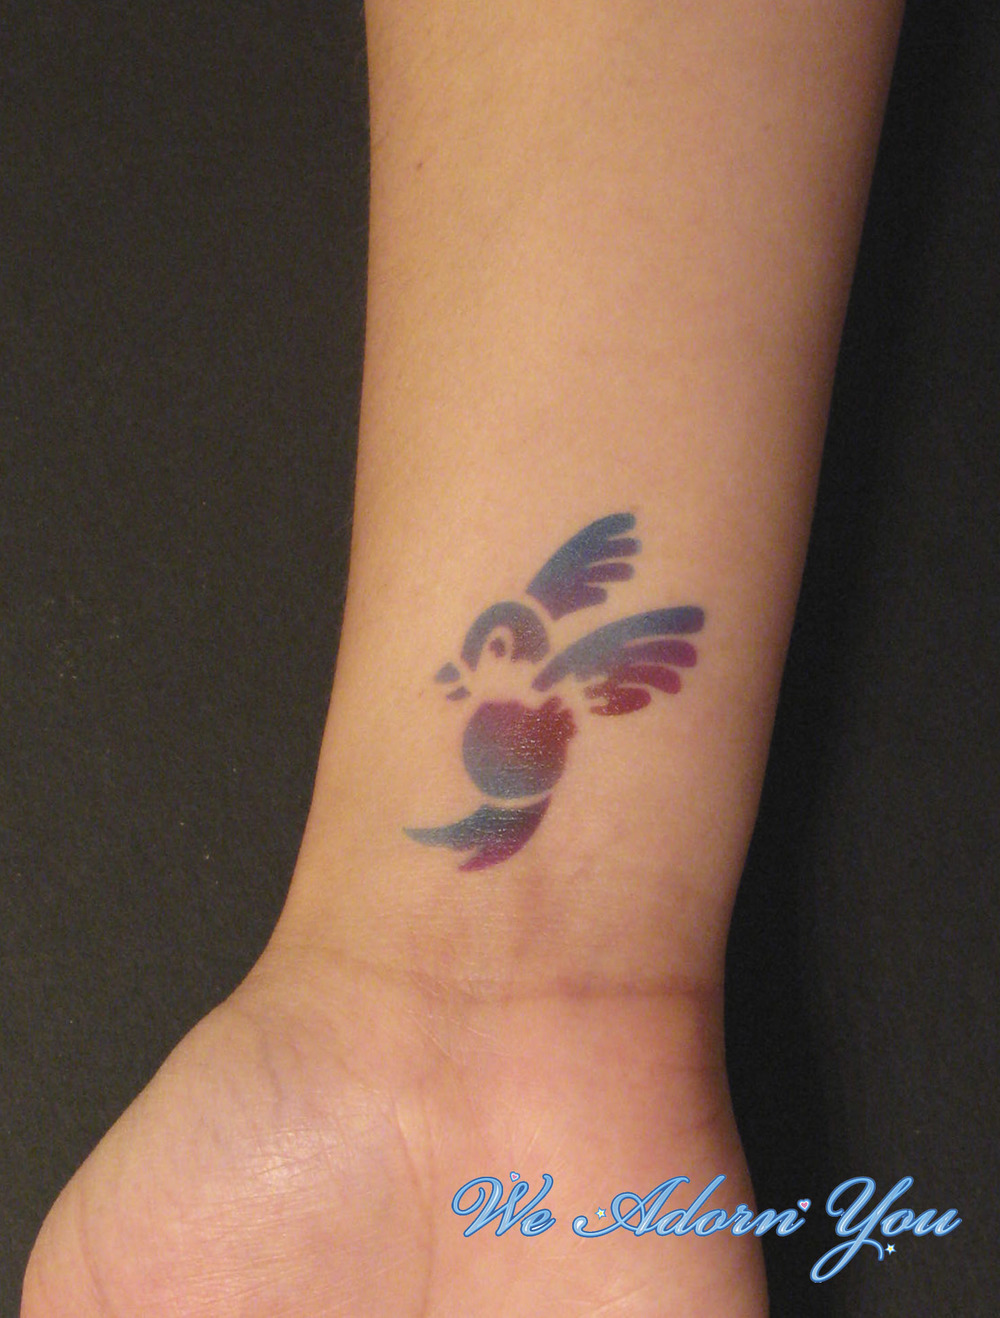 Airbrush Tattoo Humming Bird- We Adorn You.jpg